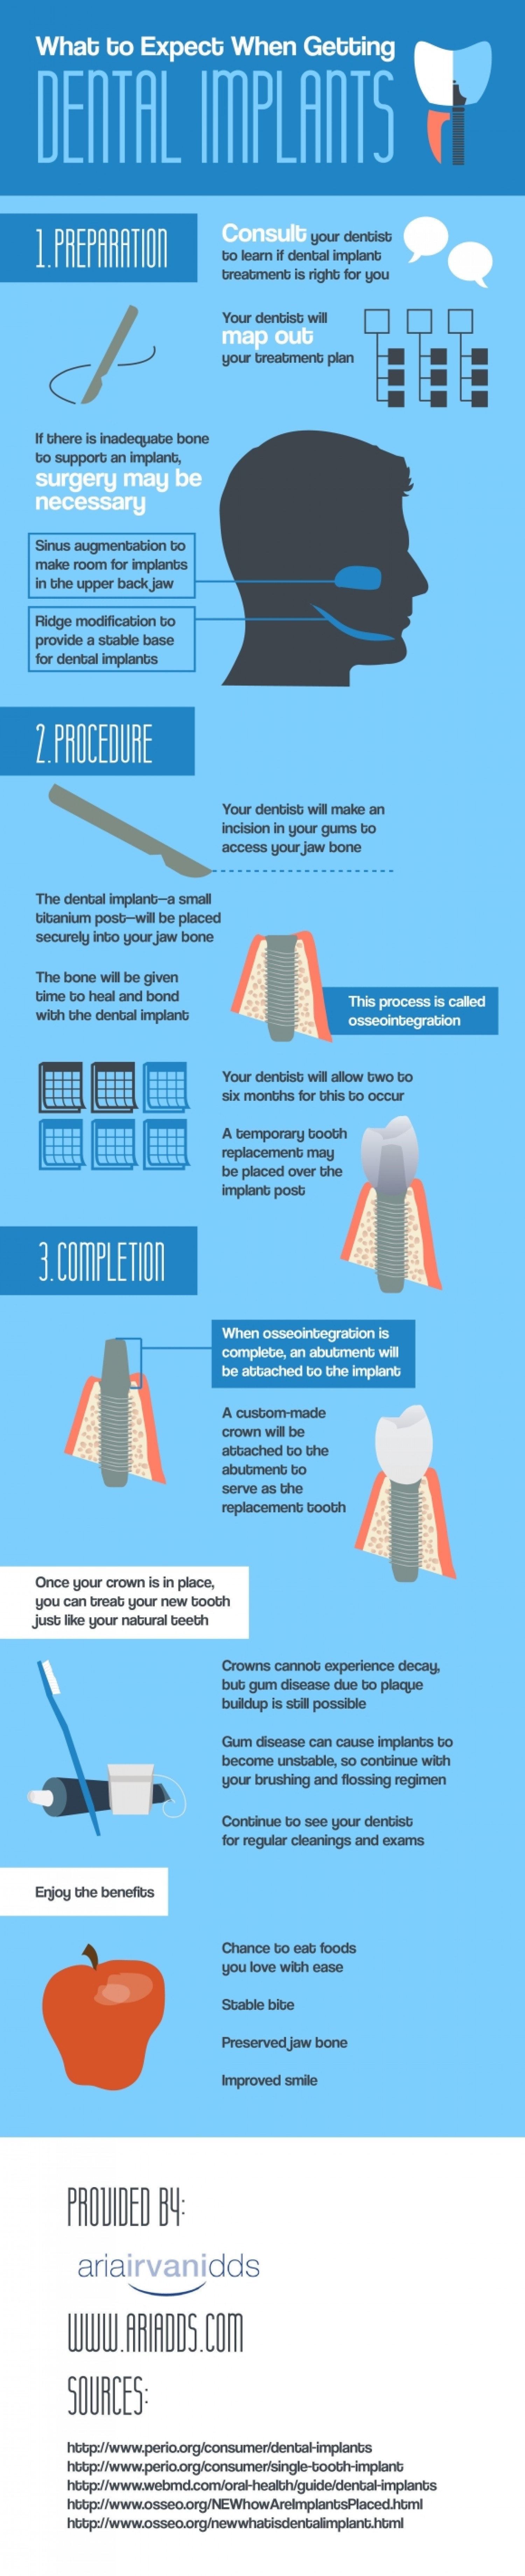 What to Expect When Getting Dental Implants Infographic